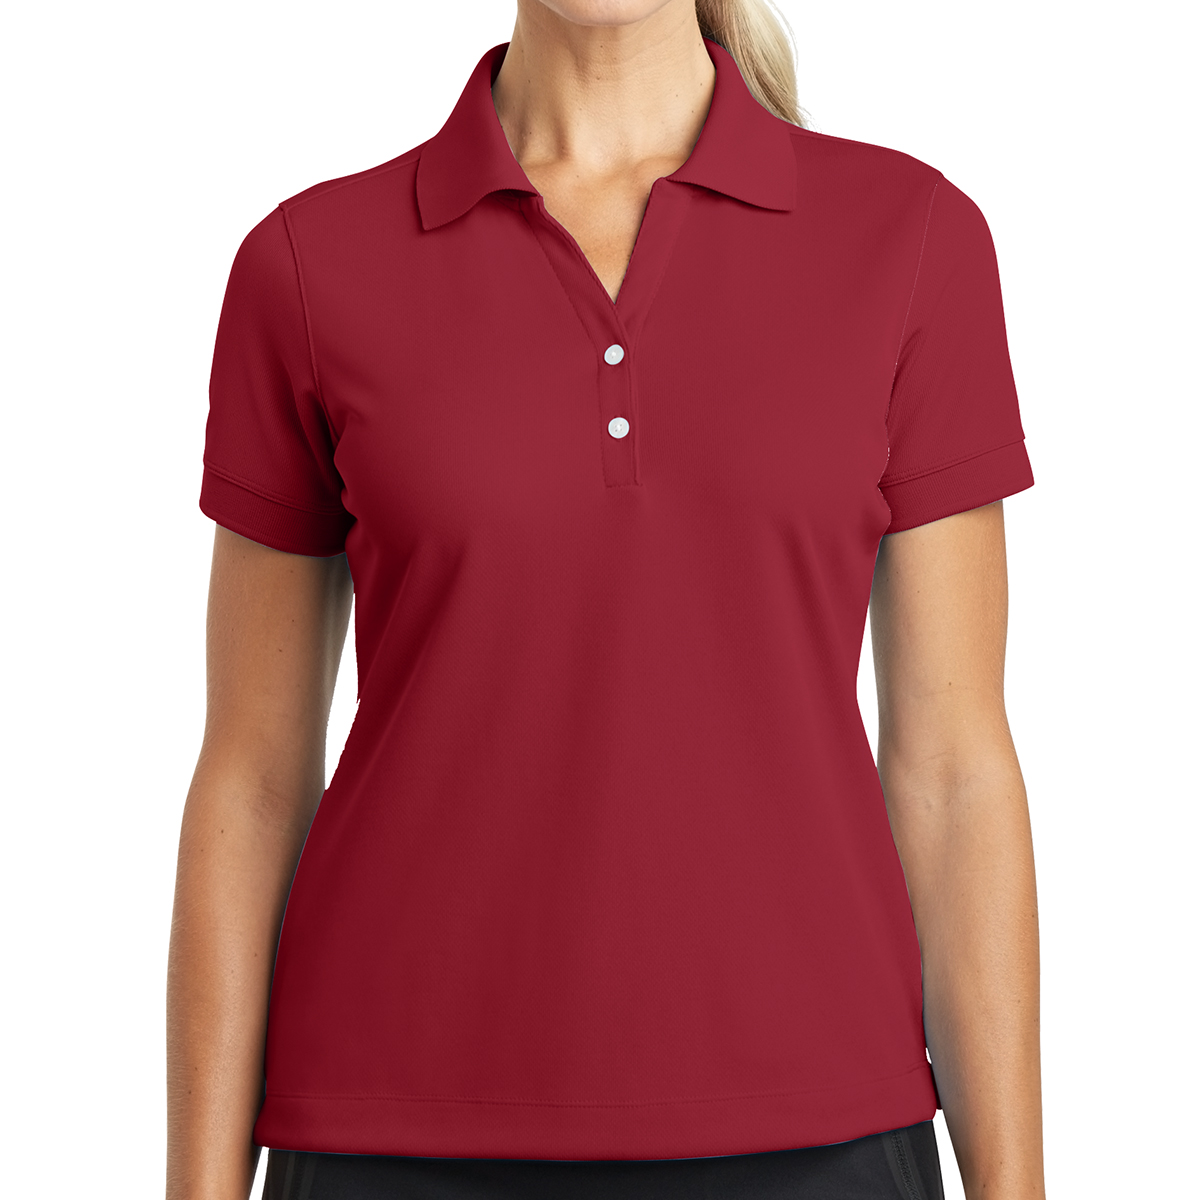 e0ec7ab5 286772 Nike Ladies' Dri-FIT Classic Polo - Hit Promotional Products